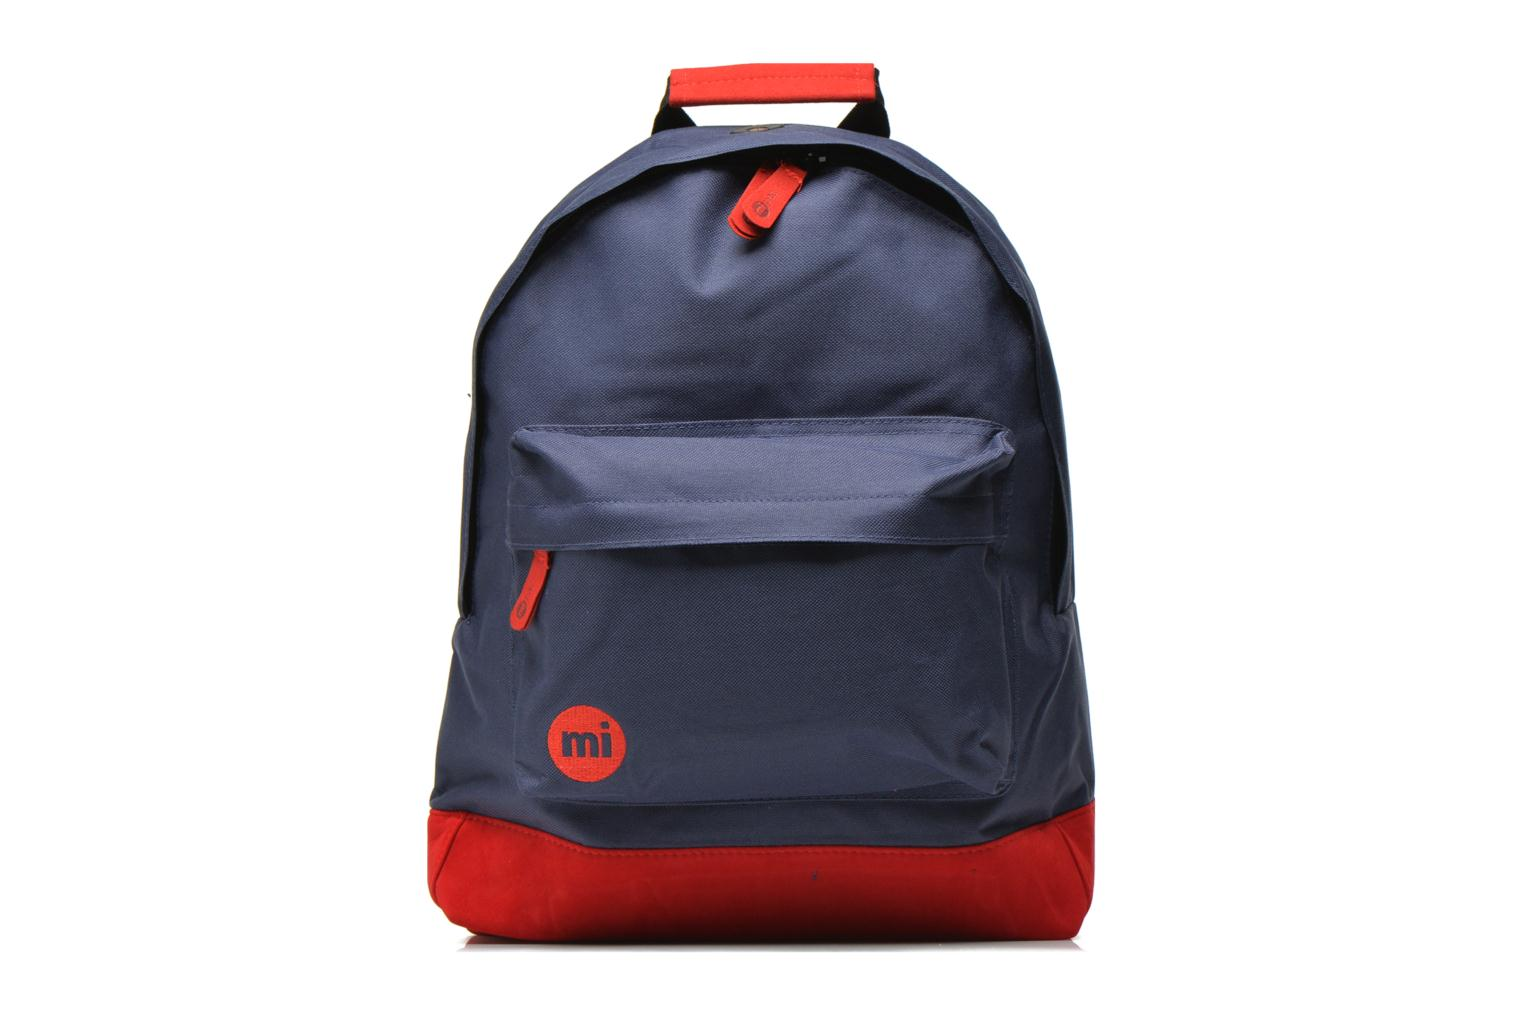 Mi Classic Backpack Classic Navyred Navyred Mi Classic Backpack Mi Pac Backpack Pac Pac w6xdBx0Y